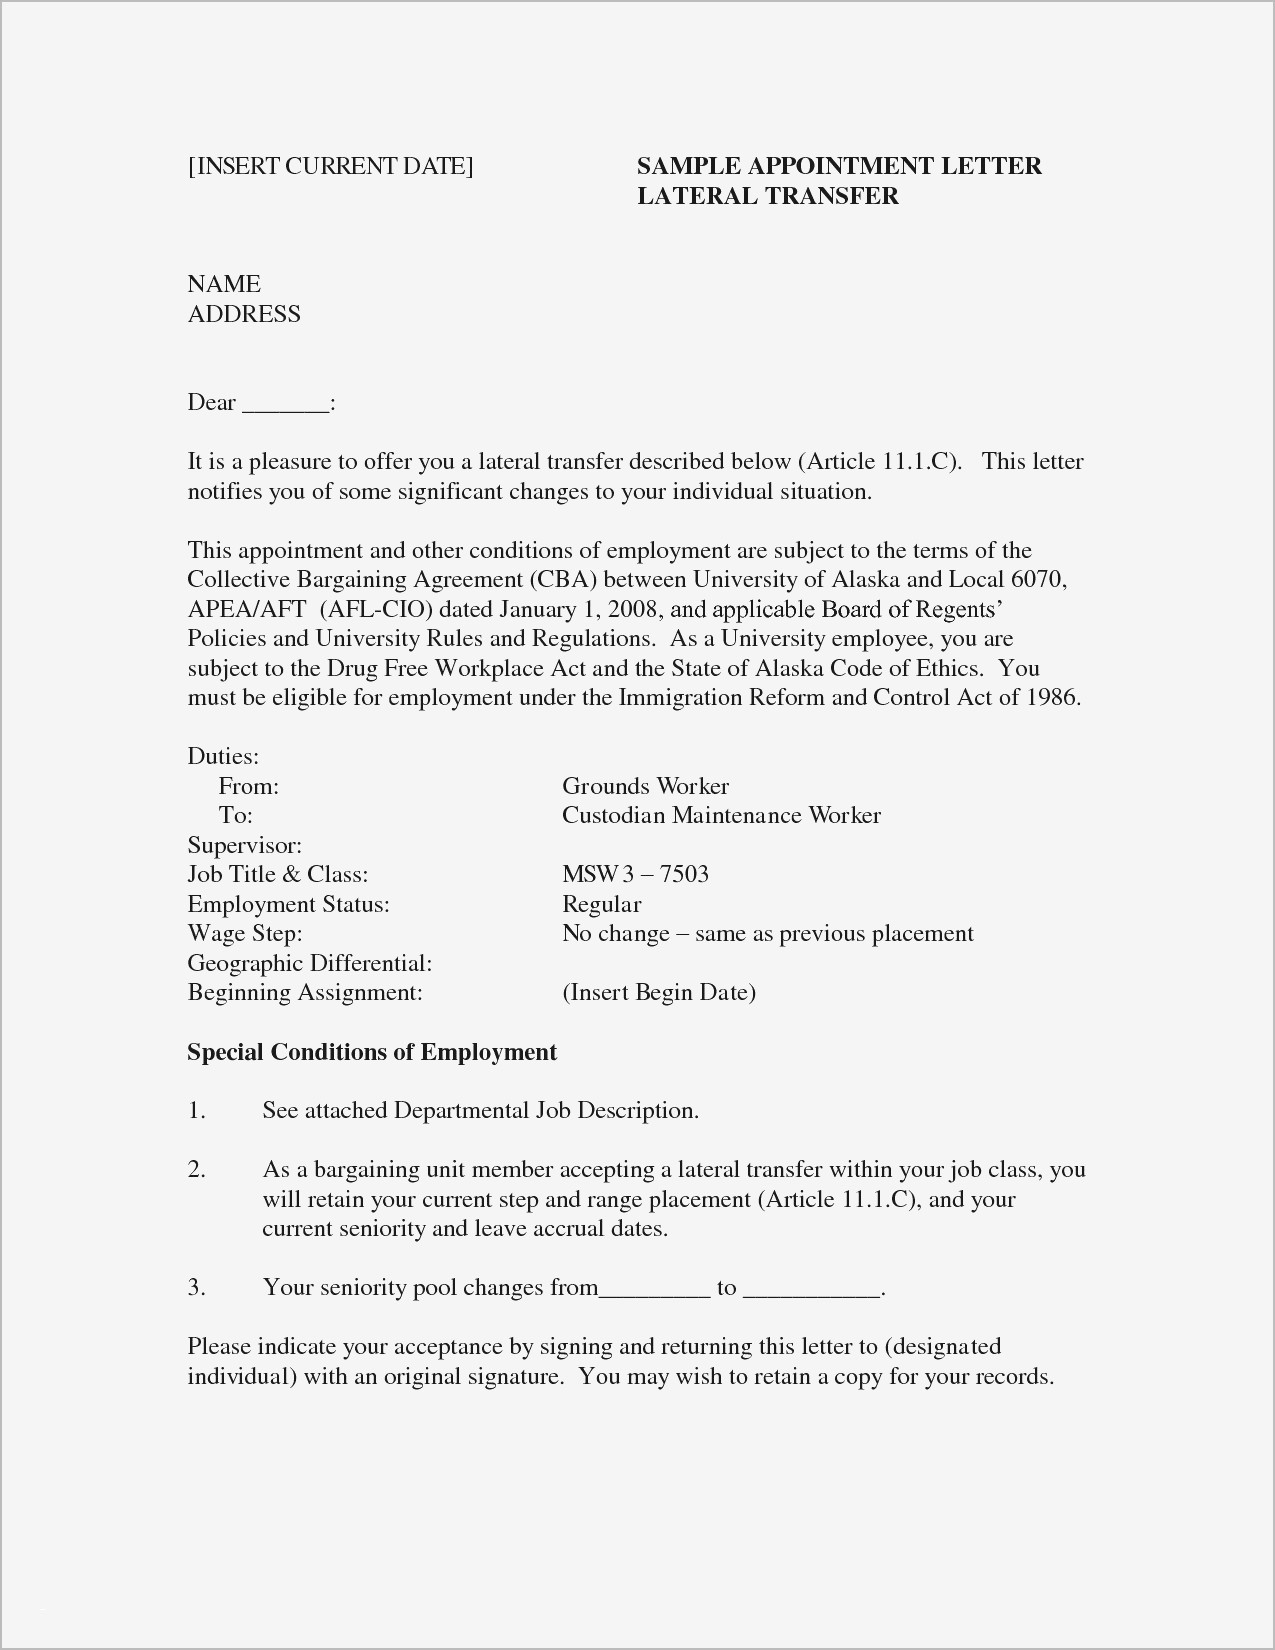 Professional Summary for Resume - Resume Professional Summary Examples Fresh Lovely Good Summary for